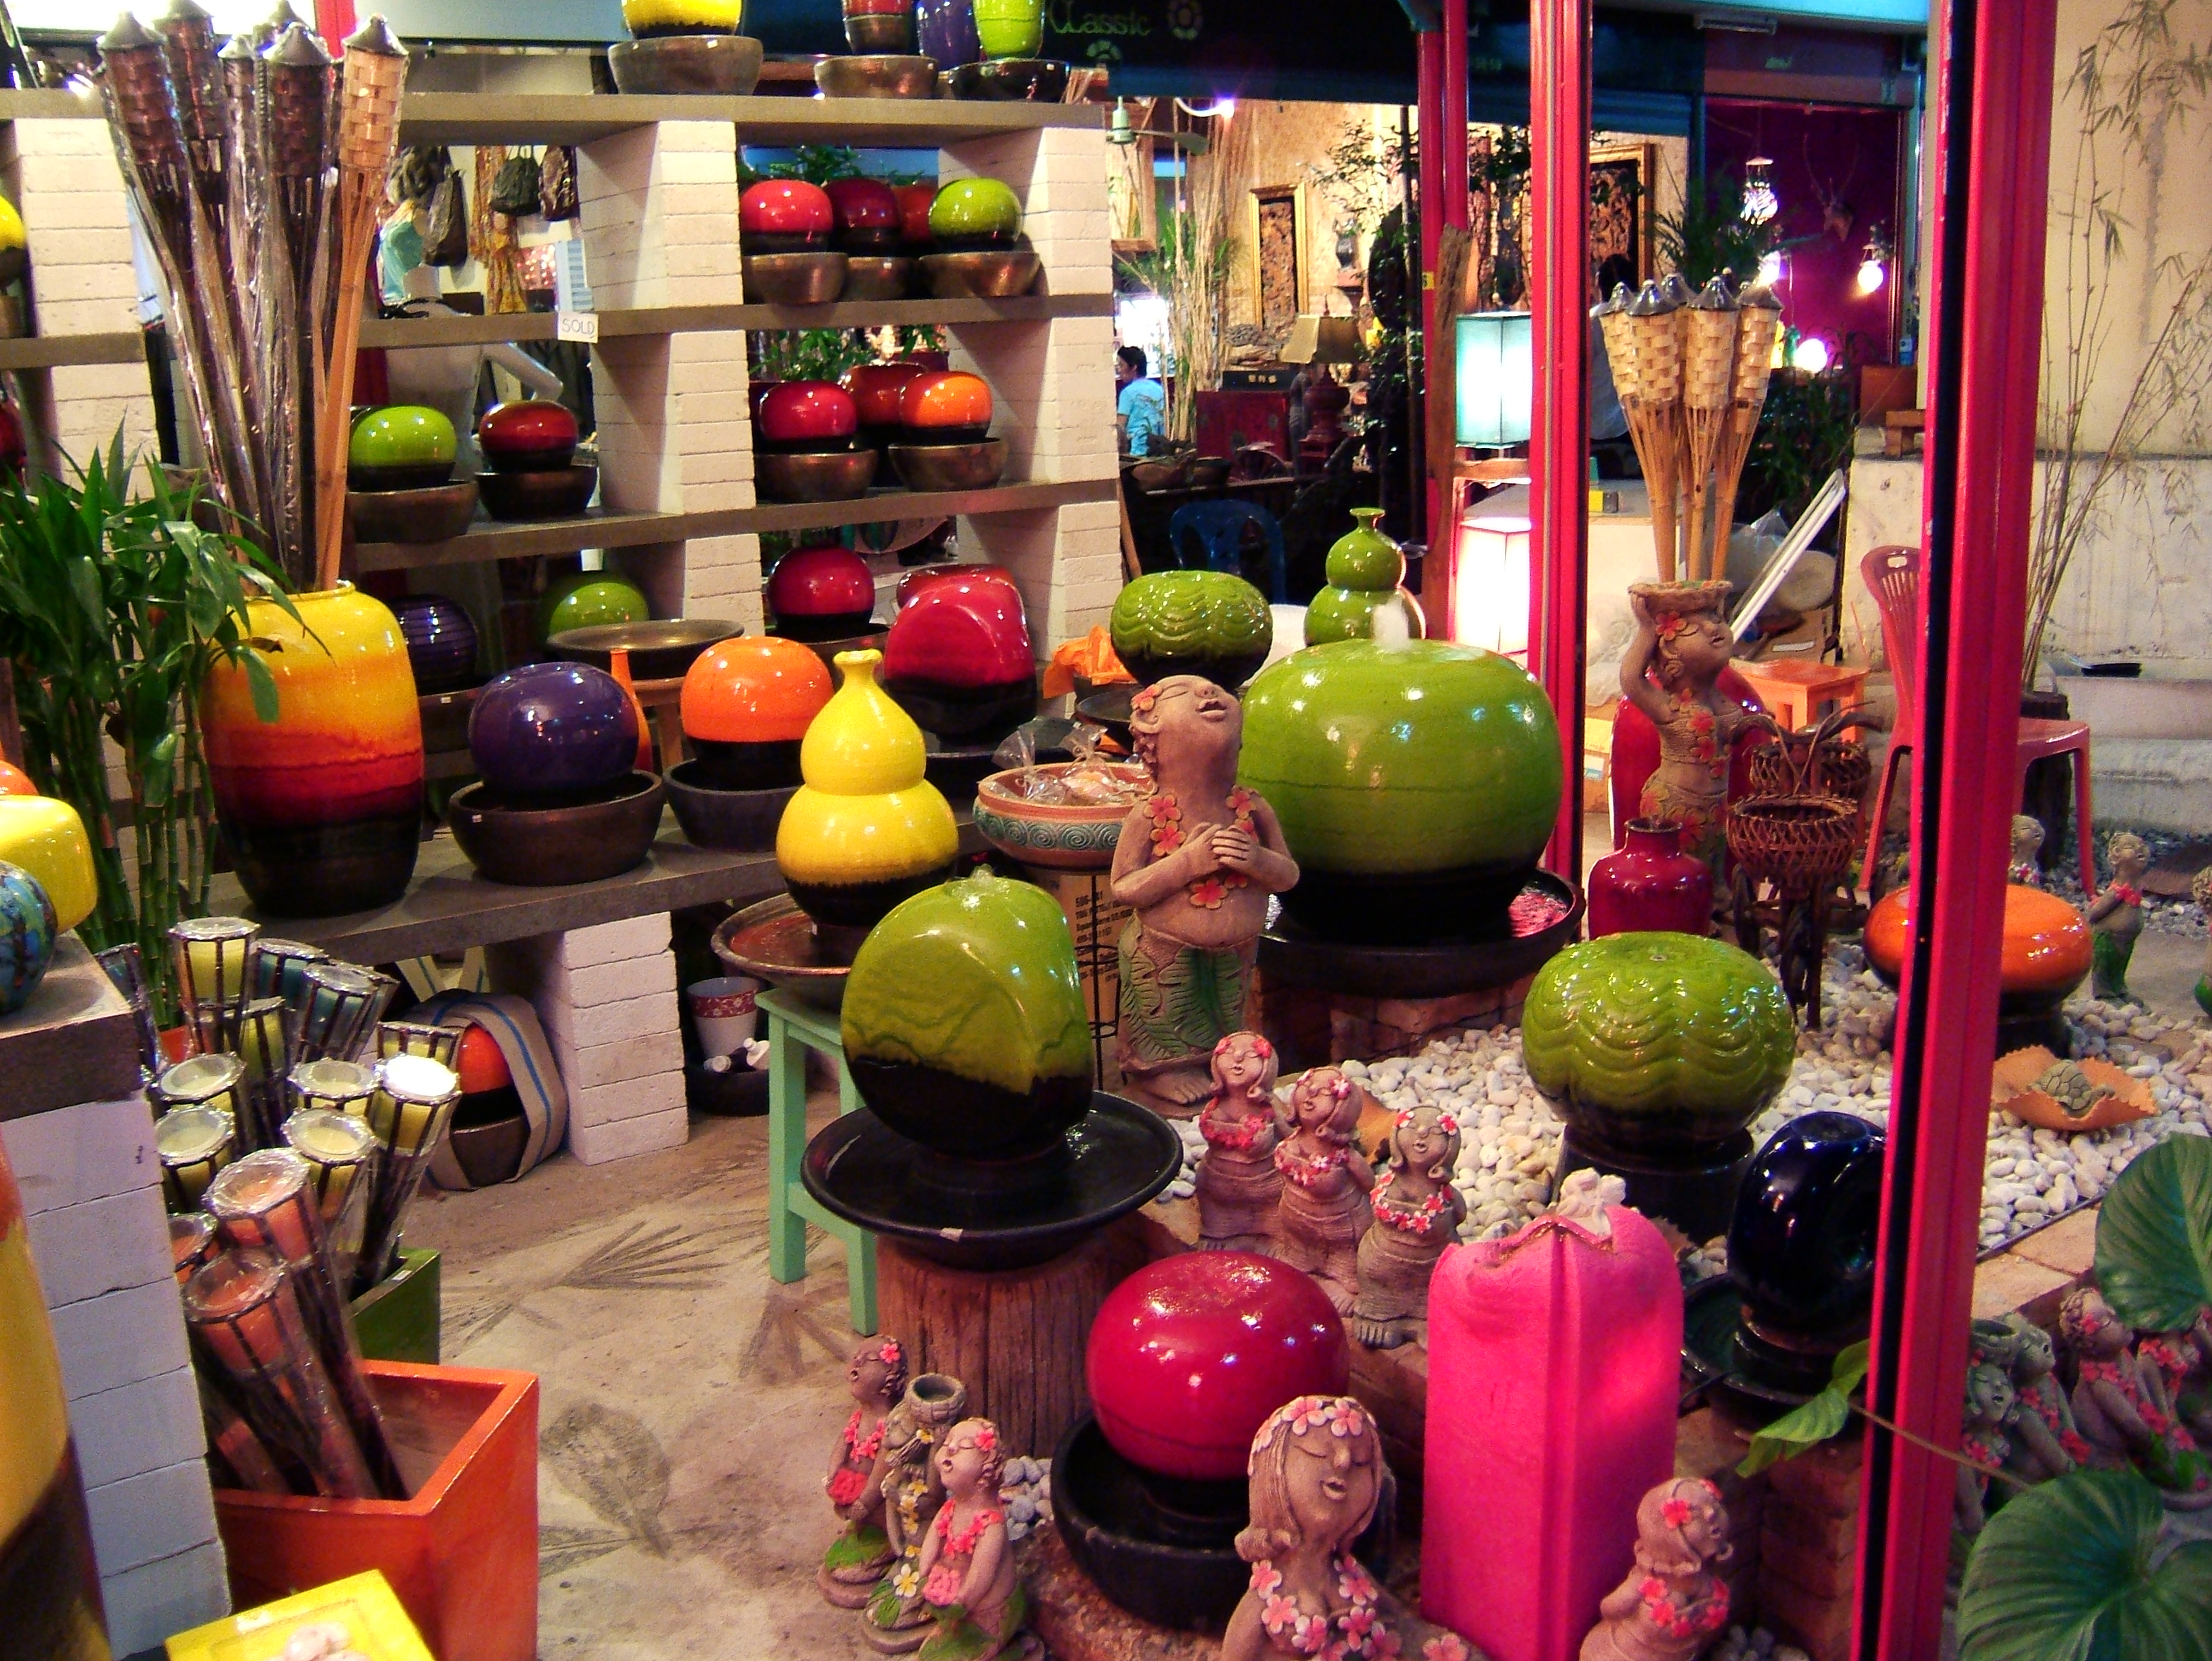 Thailands retail businesses arts and crafts trade Oct 2005 08